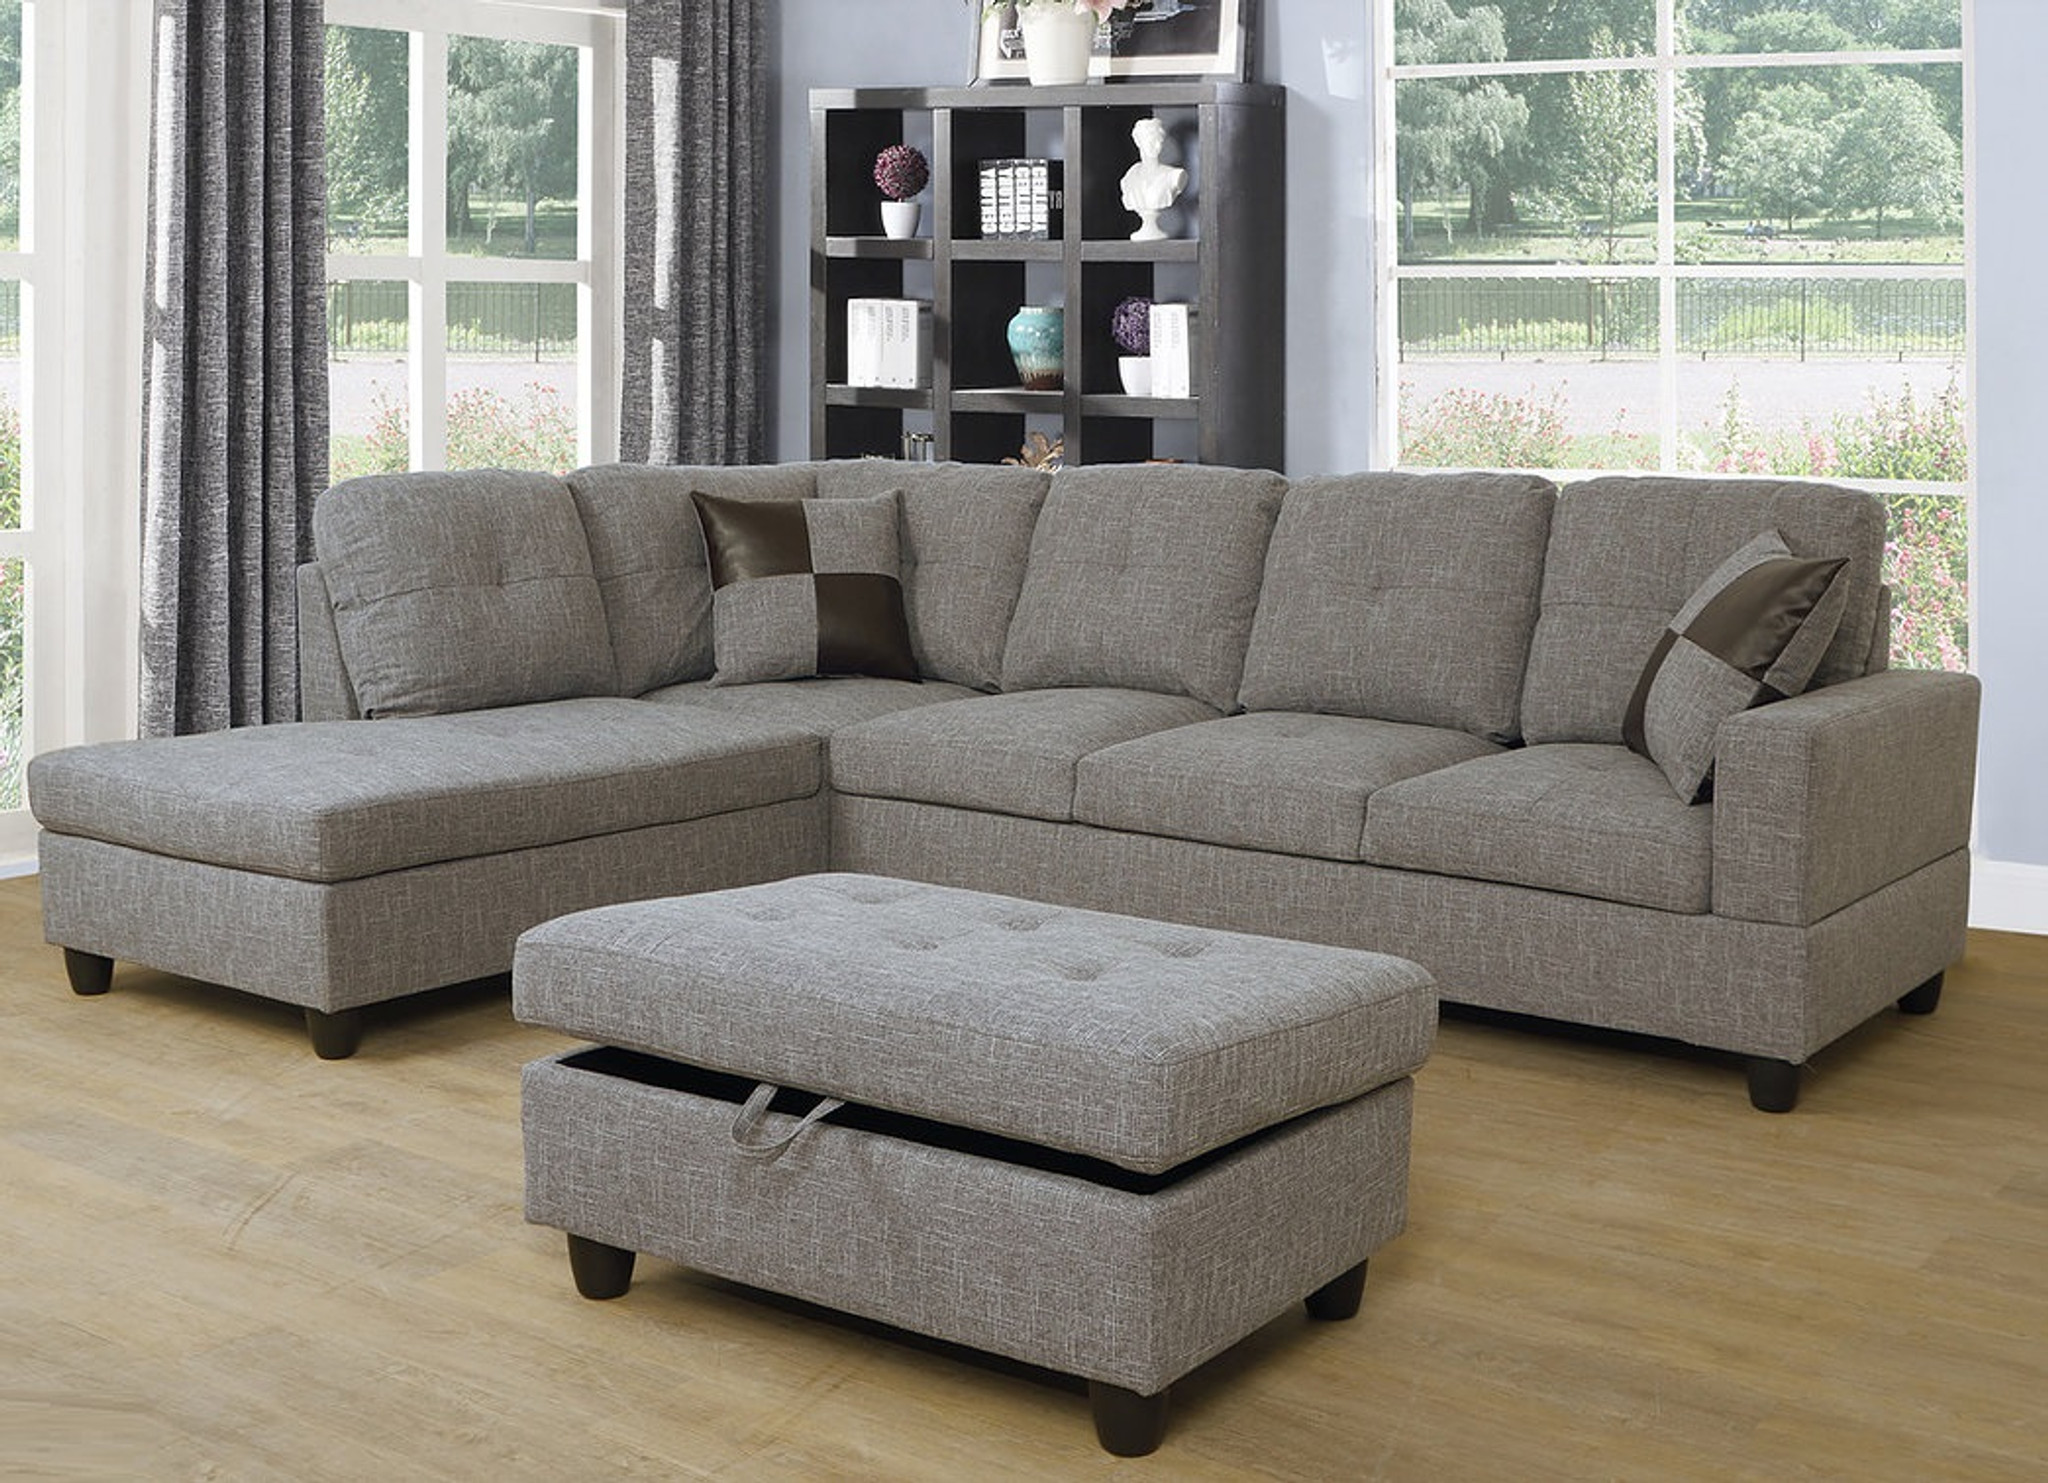 CHARCOAL GRAY COLOR 3PCS FABRIC SECTIONAL SOFA CHAISE AND STORAGE OTTOMAN